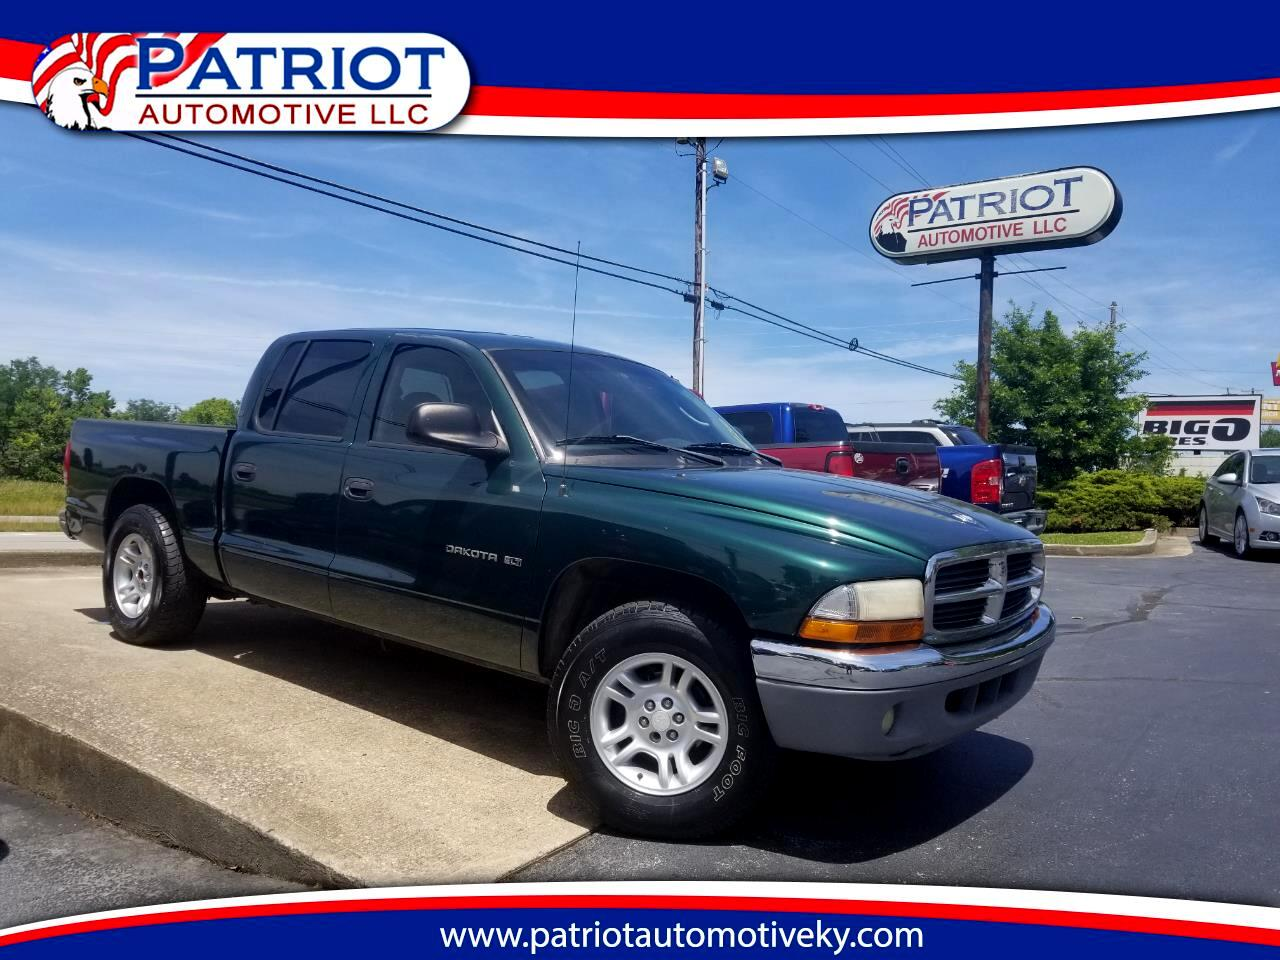 2001 Dodge Dakota Quad Cab 2WD